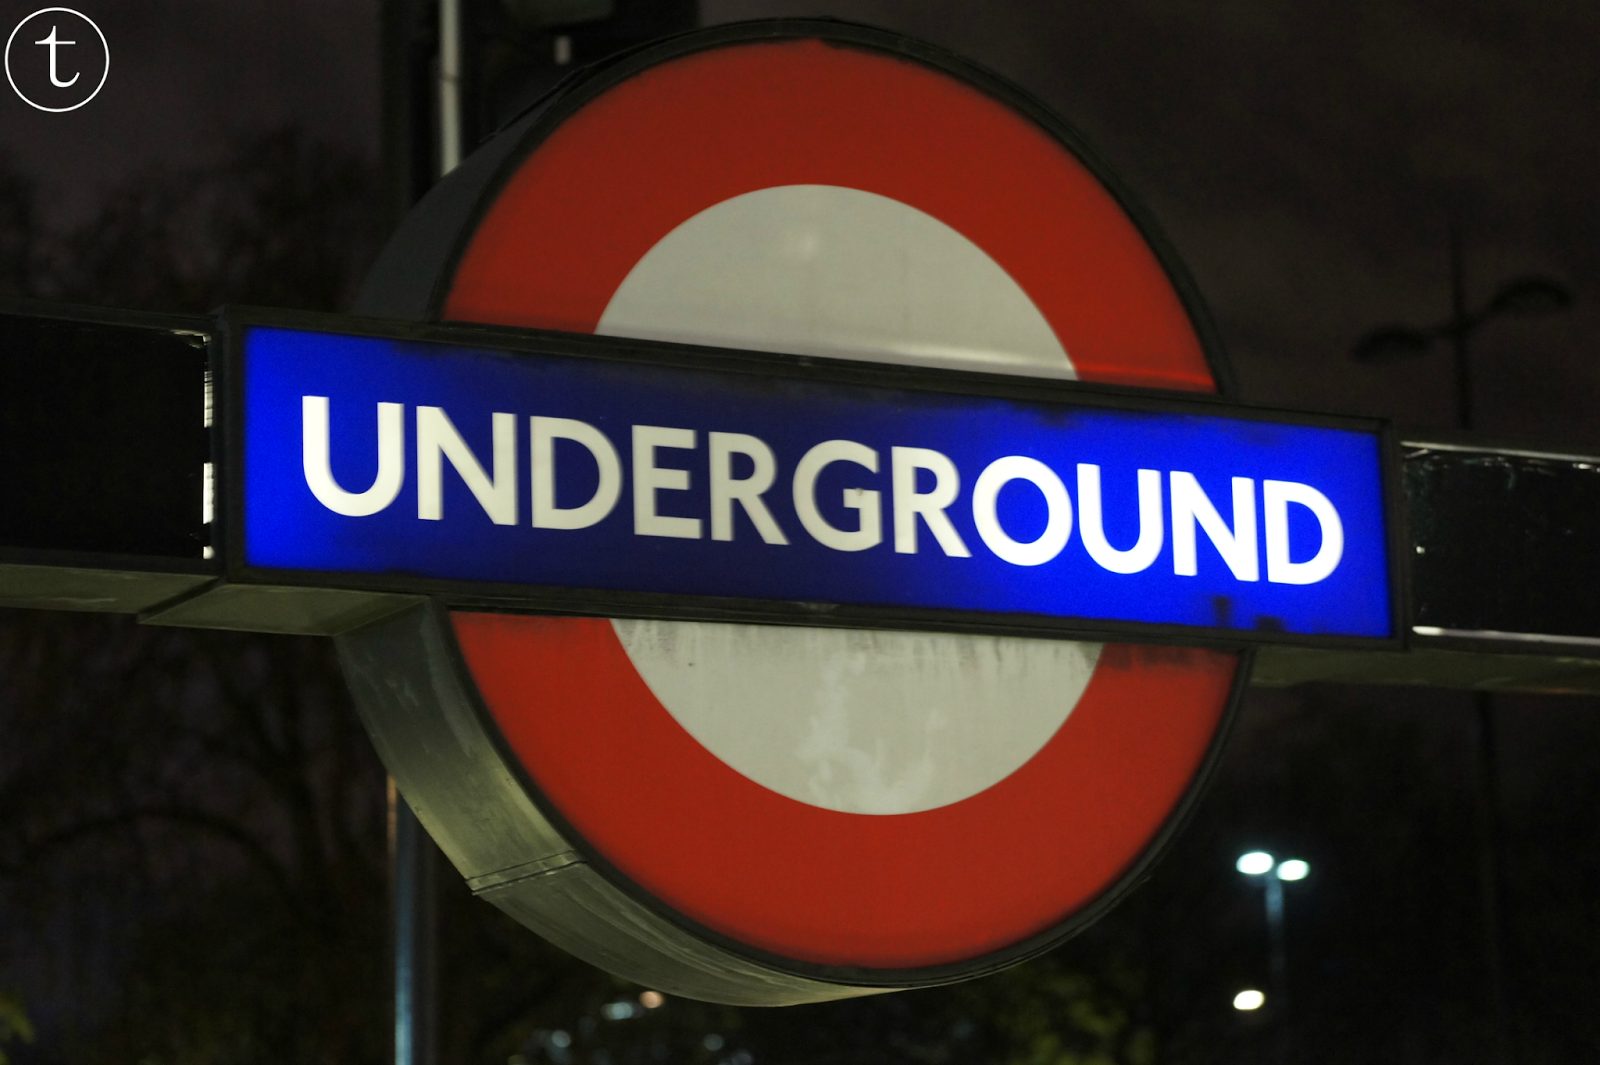 underground logo in london